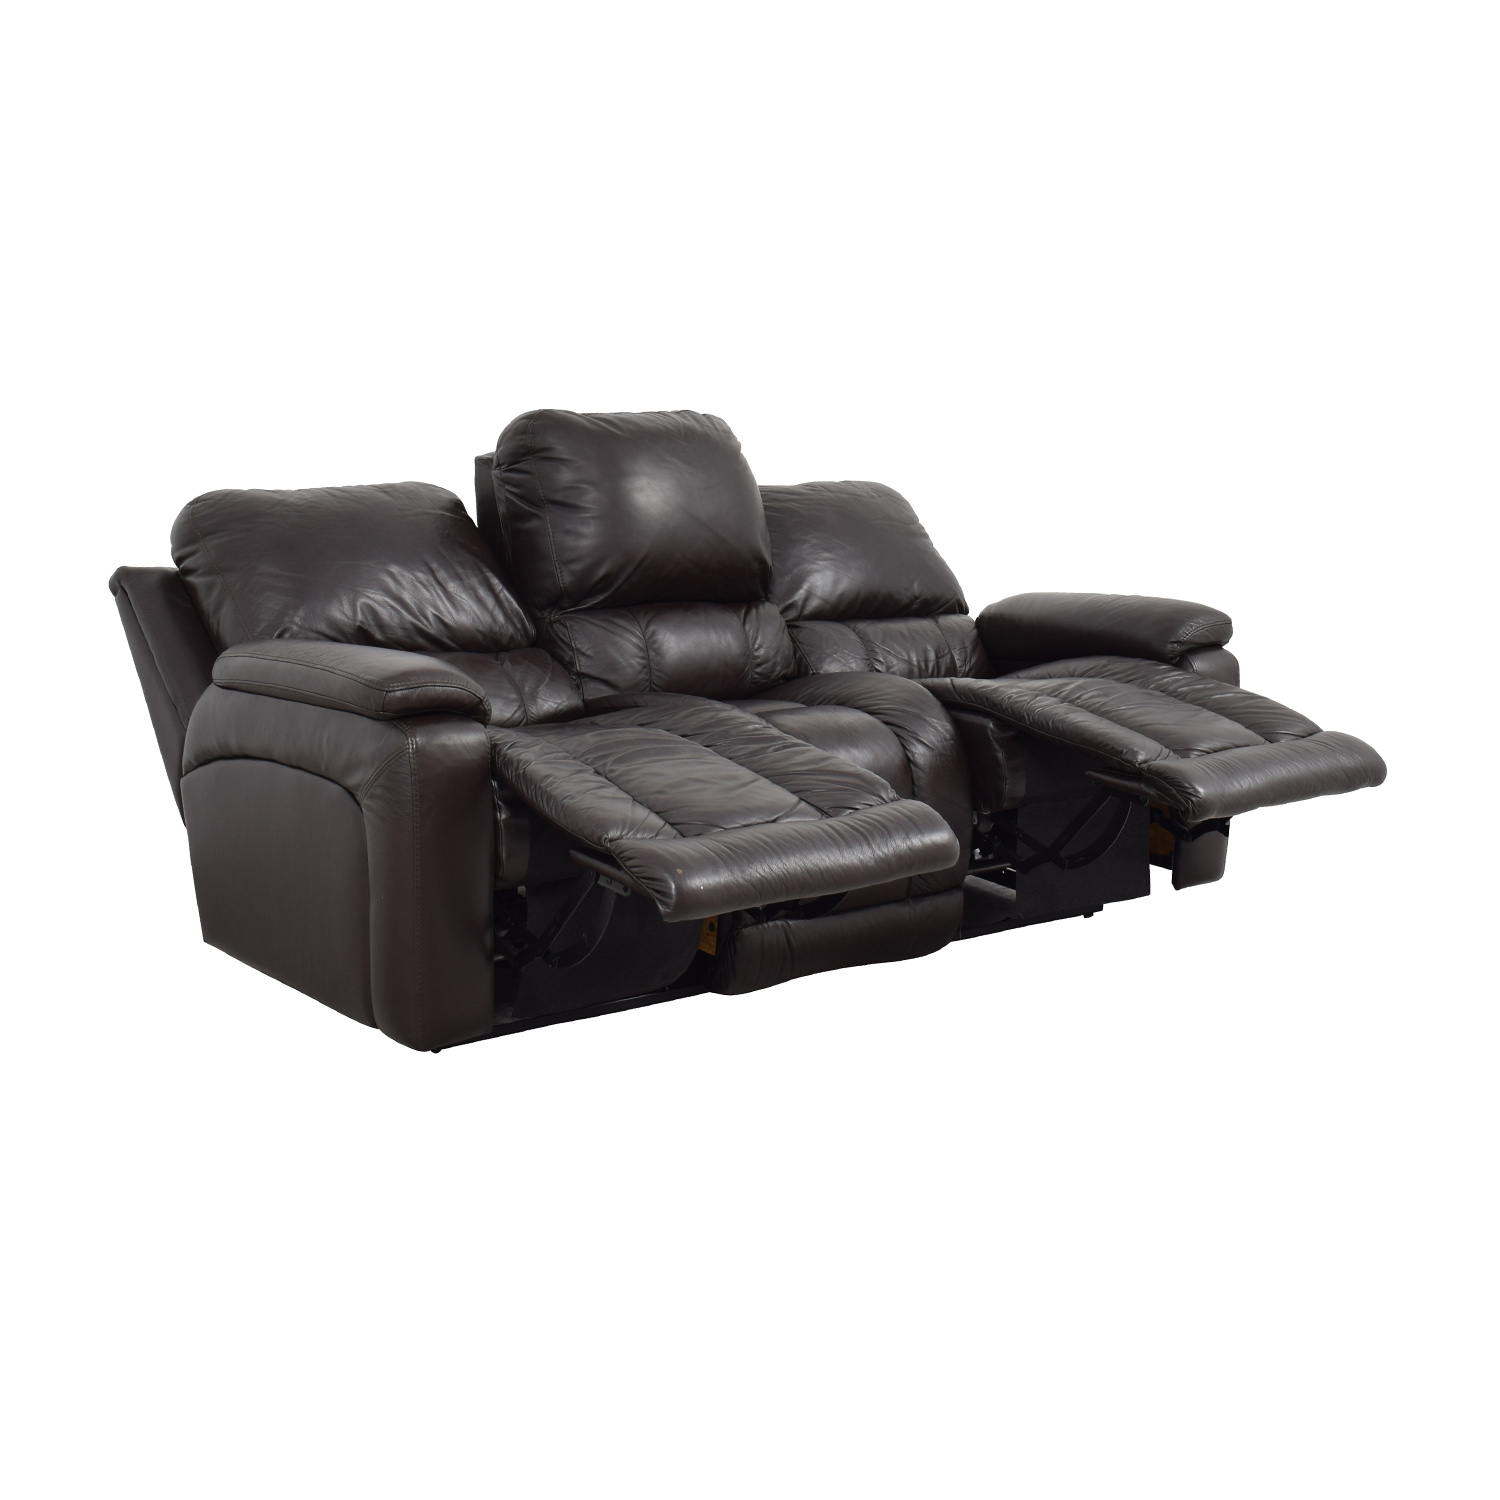 ... La-Z-Boy La-Z-Boy Brown Leather Reclining Sofa Sofas ...  sc 1 st  Furnishare & 71% OFF - La-Z-Boy La-Z-Boy Brown Leather Reclining Sofa / Sofas islam-shia.org